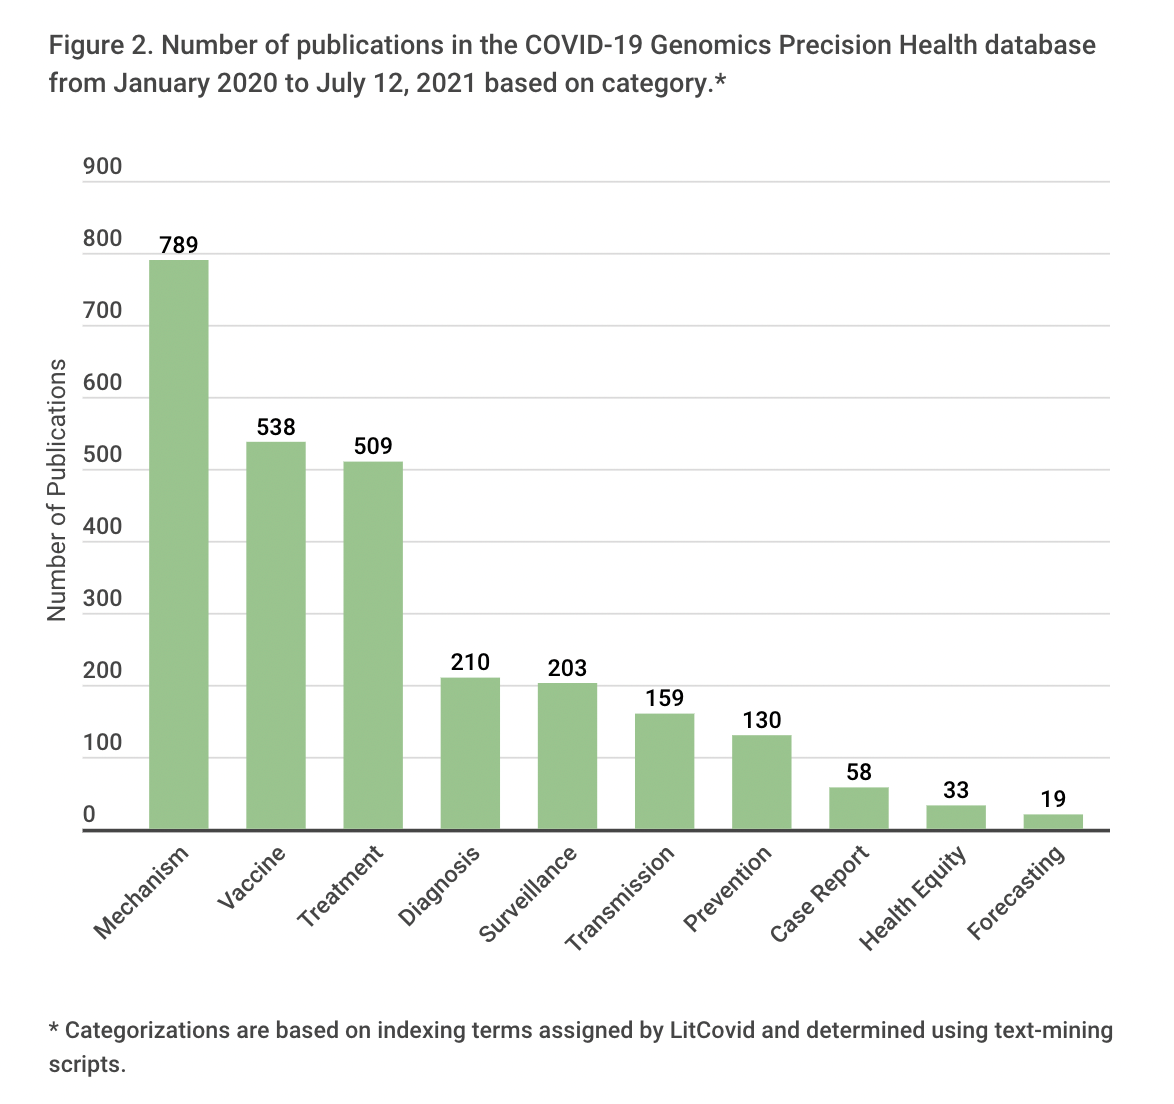 Number of publications in the COVID-19 Genomic Precision Health database based on category in the years 2020 and 2021